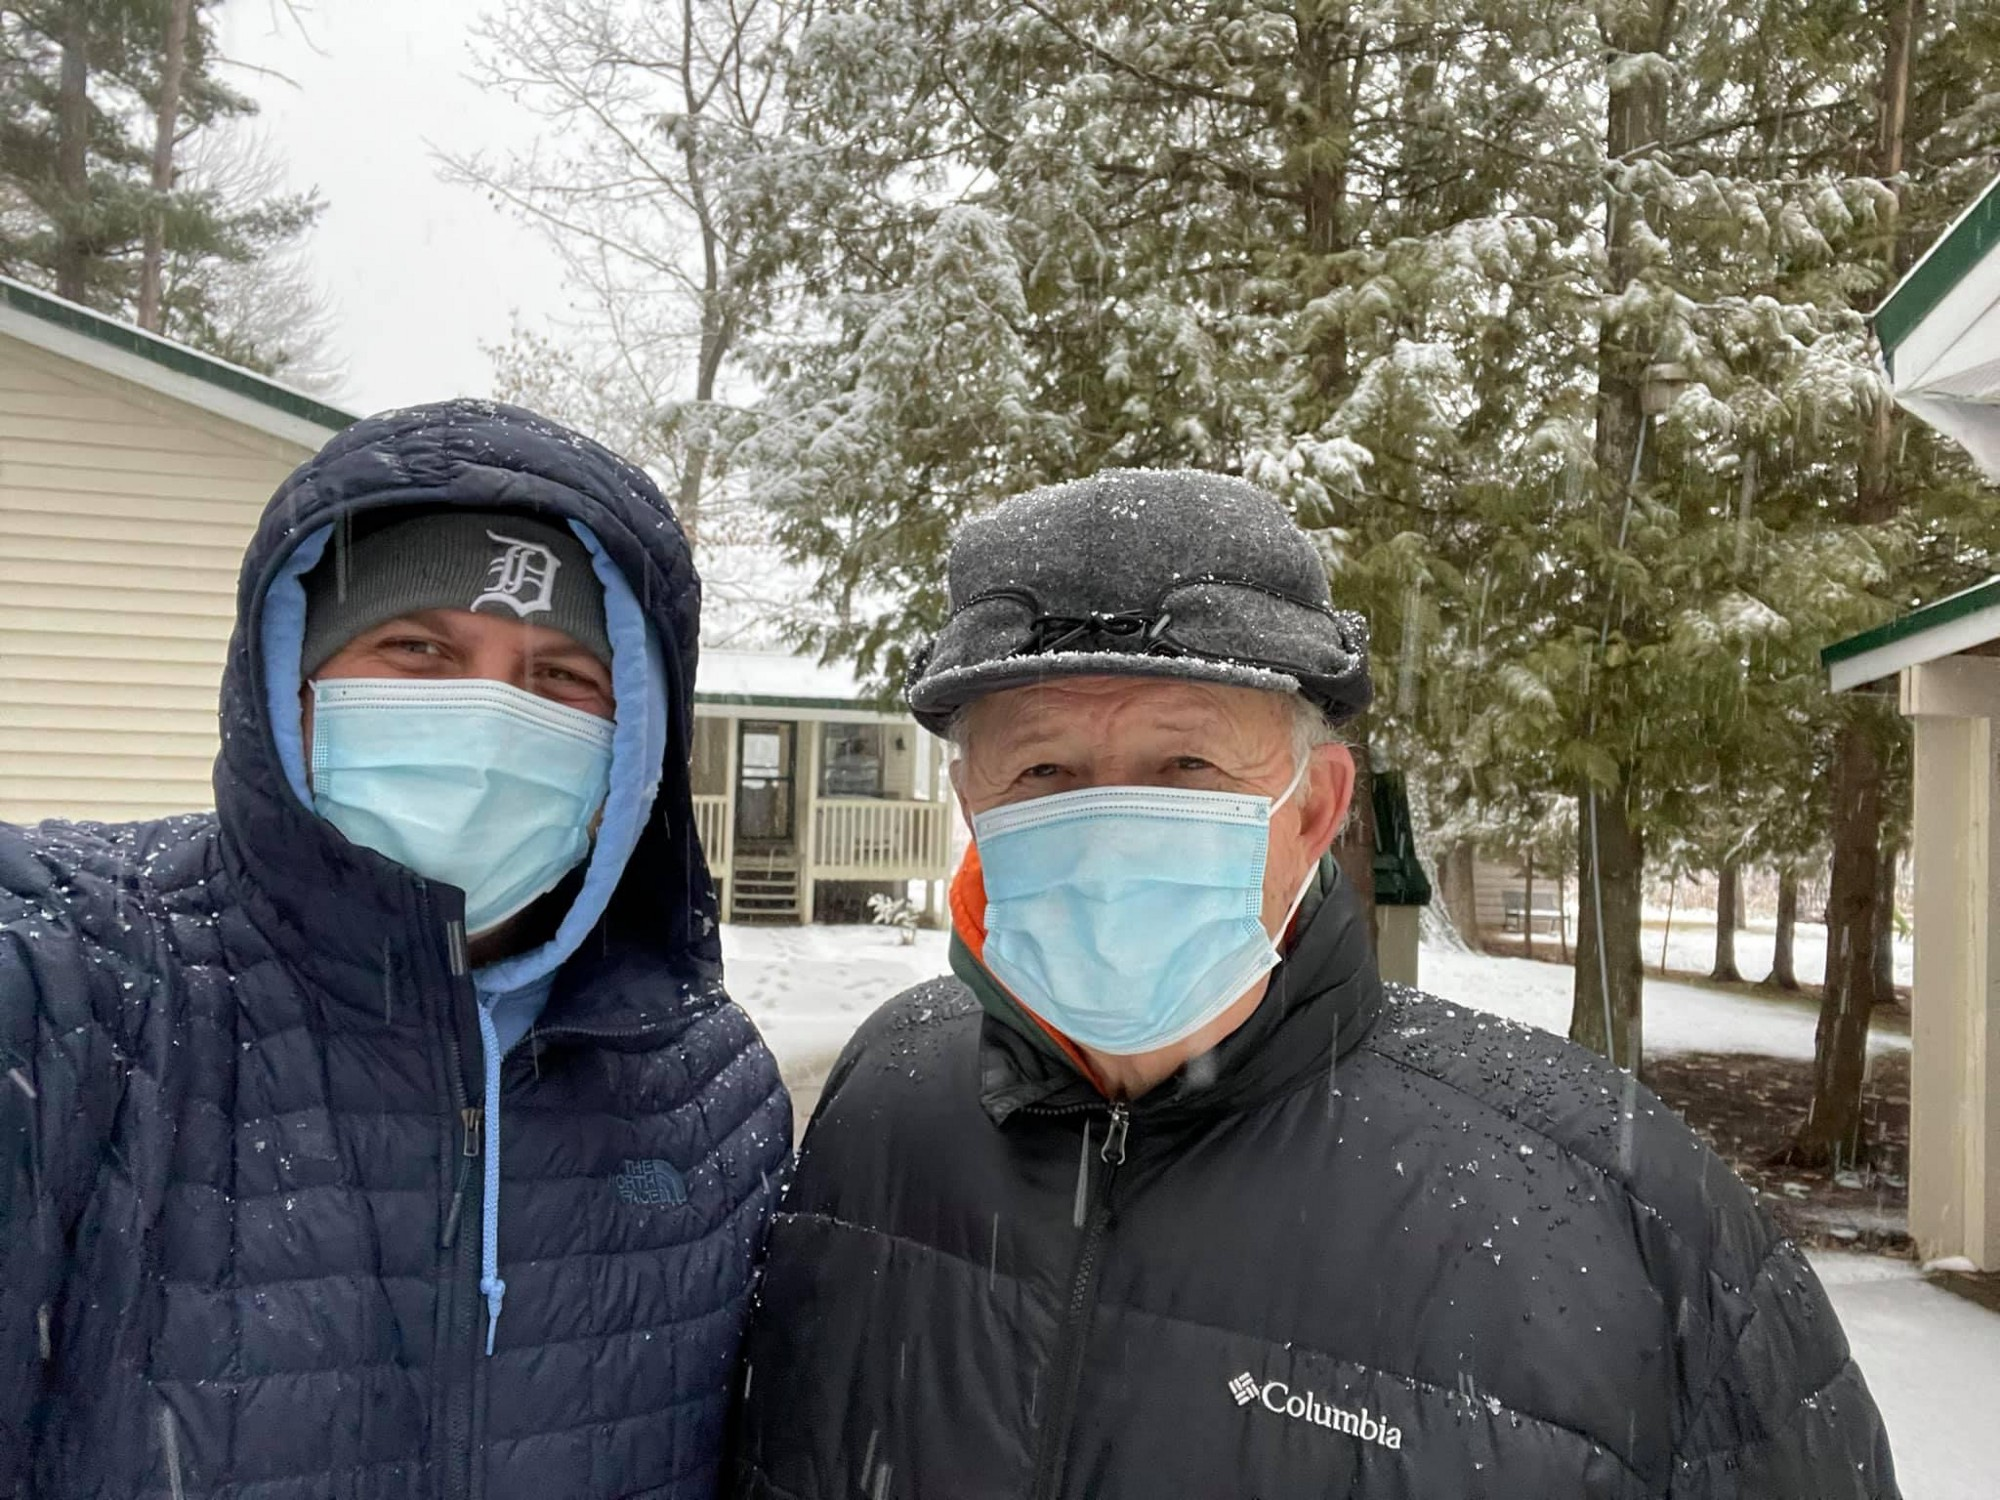 Father and son stand in front of the cabin while it's snowing dressed in winter coats, hats, and surgical masks.